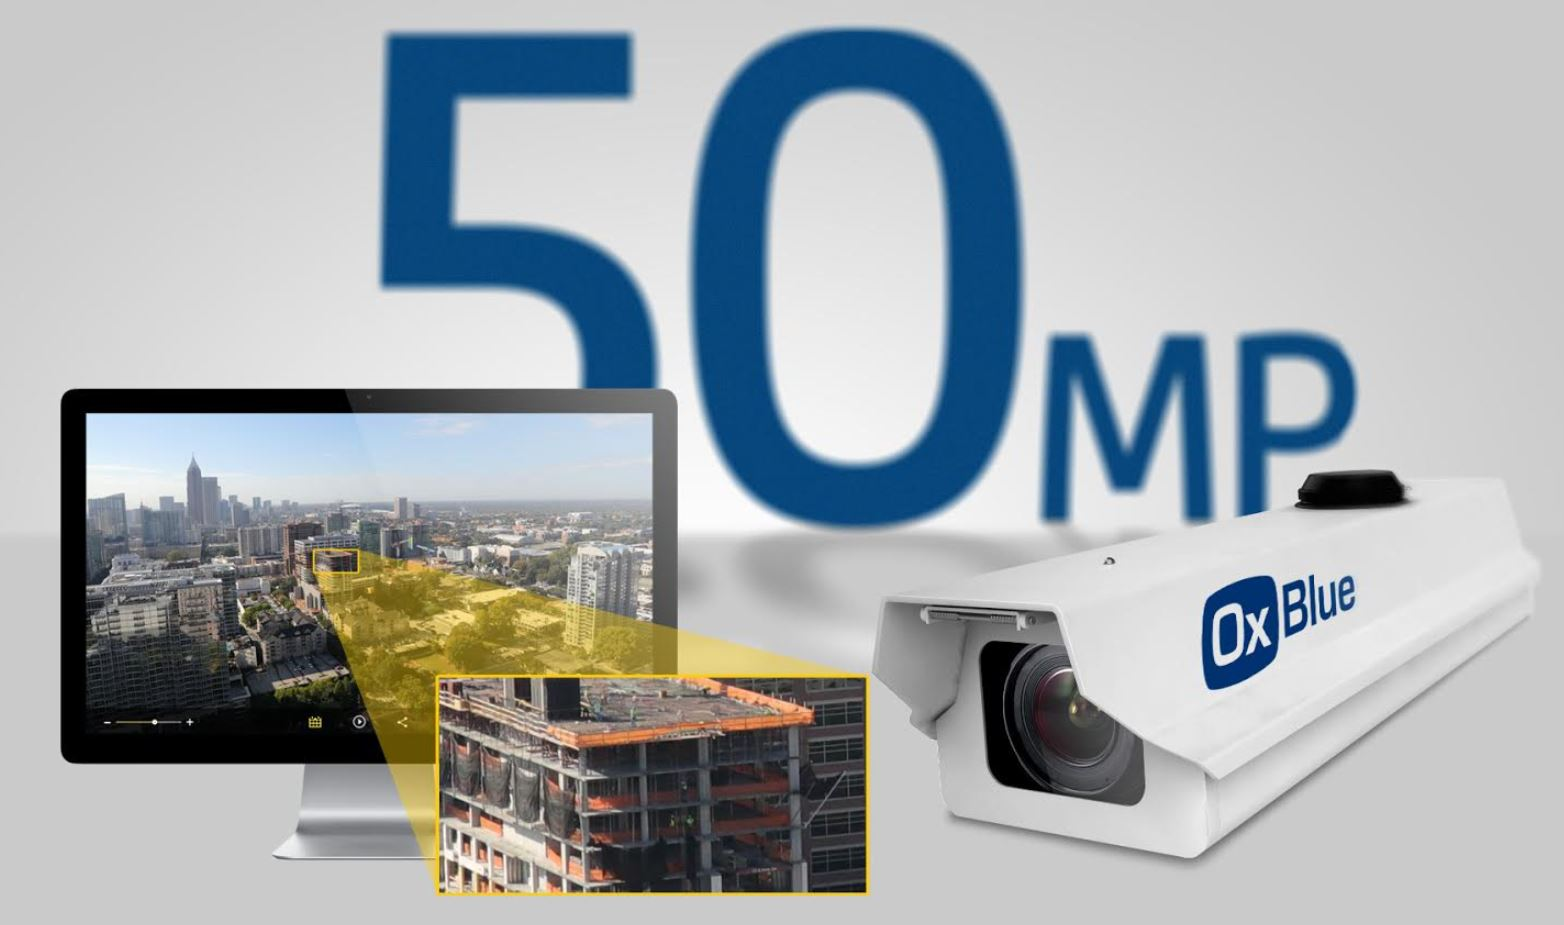 The OxBlue 50-MP construction camera produces high resolution images for documenting, managing, and marketing construction projects.